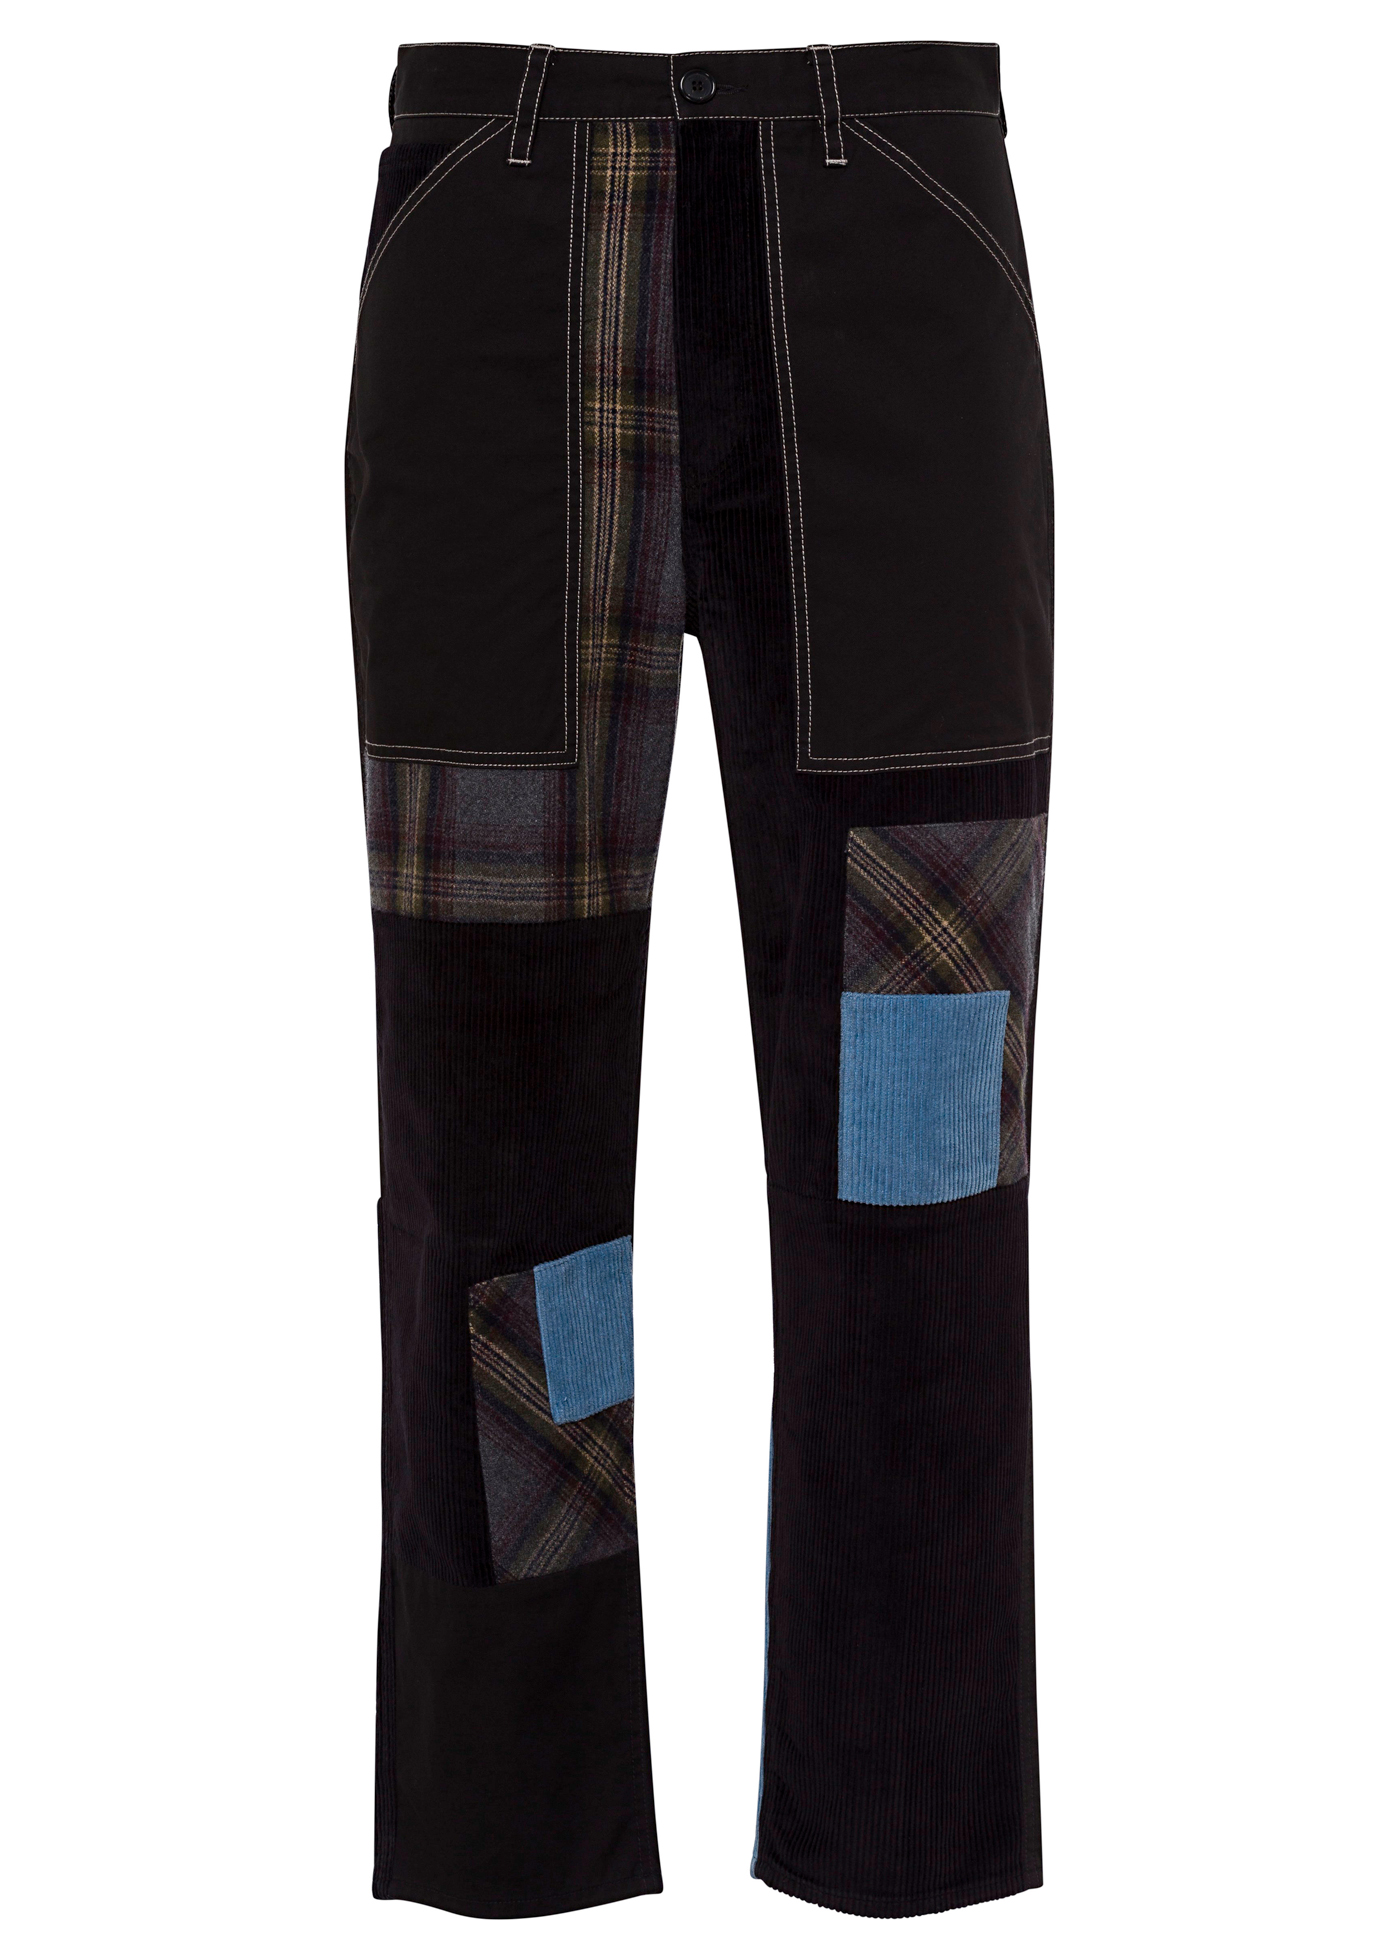 CROPPED PATCHWORK FATIGUE TROUSERS image number 0